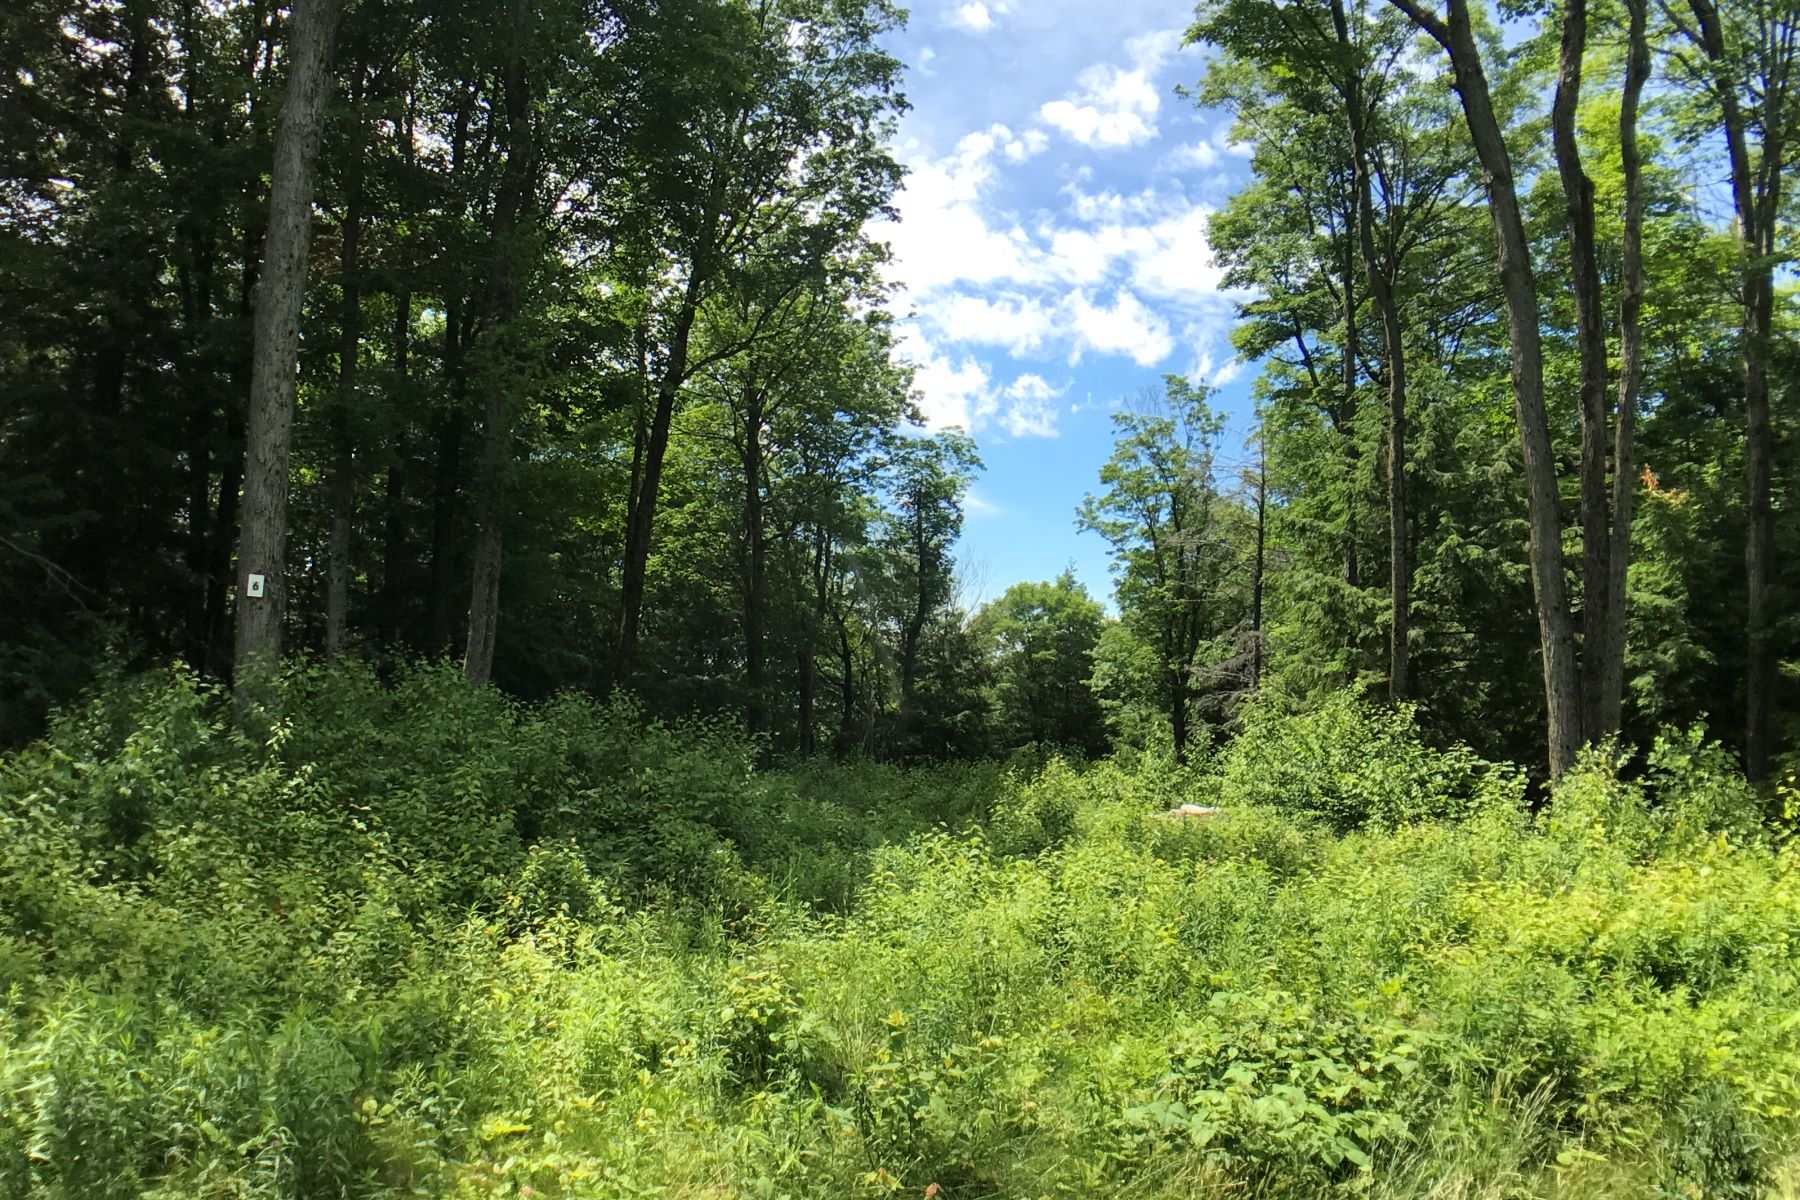 Terreno por un Venta en Affordable Ready-to-Build Parcel with Shared Waterfront Access Lot #6, Moose Dr Lee, Massachusetts, 01238 Estados Unidos